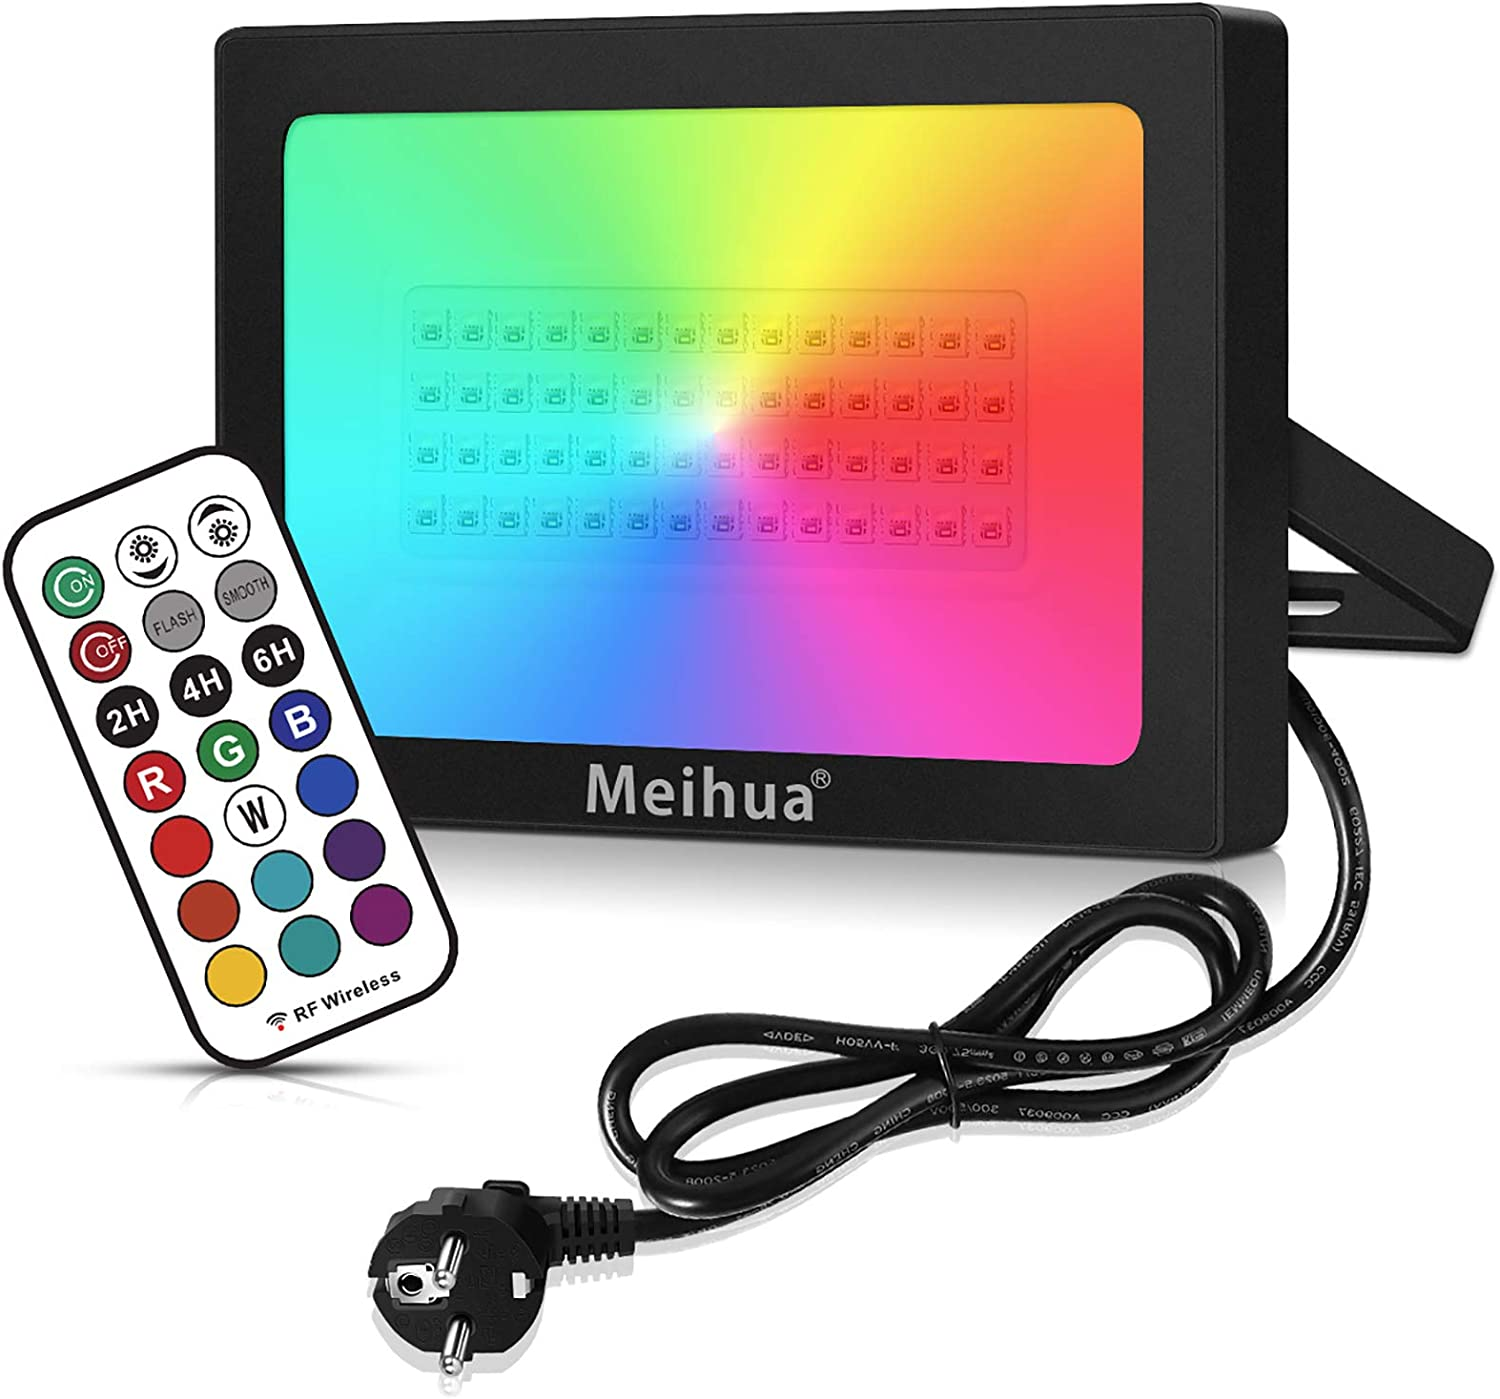 Rgb Spotlight With Remote Control Meihua Beleuchtung